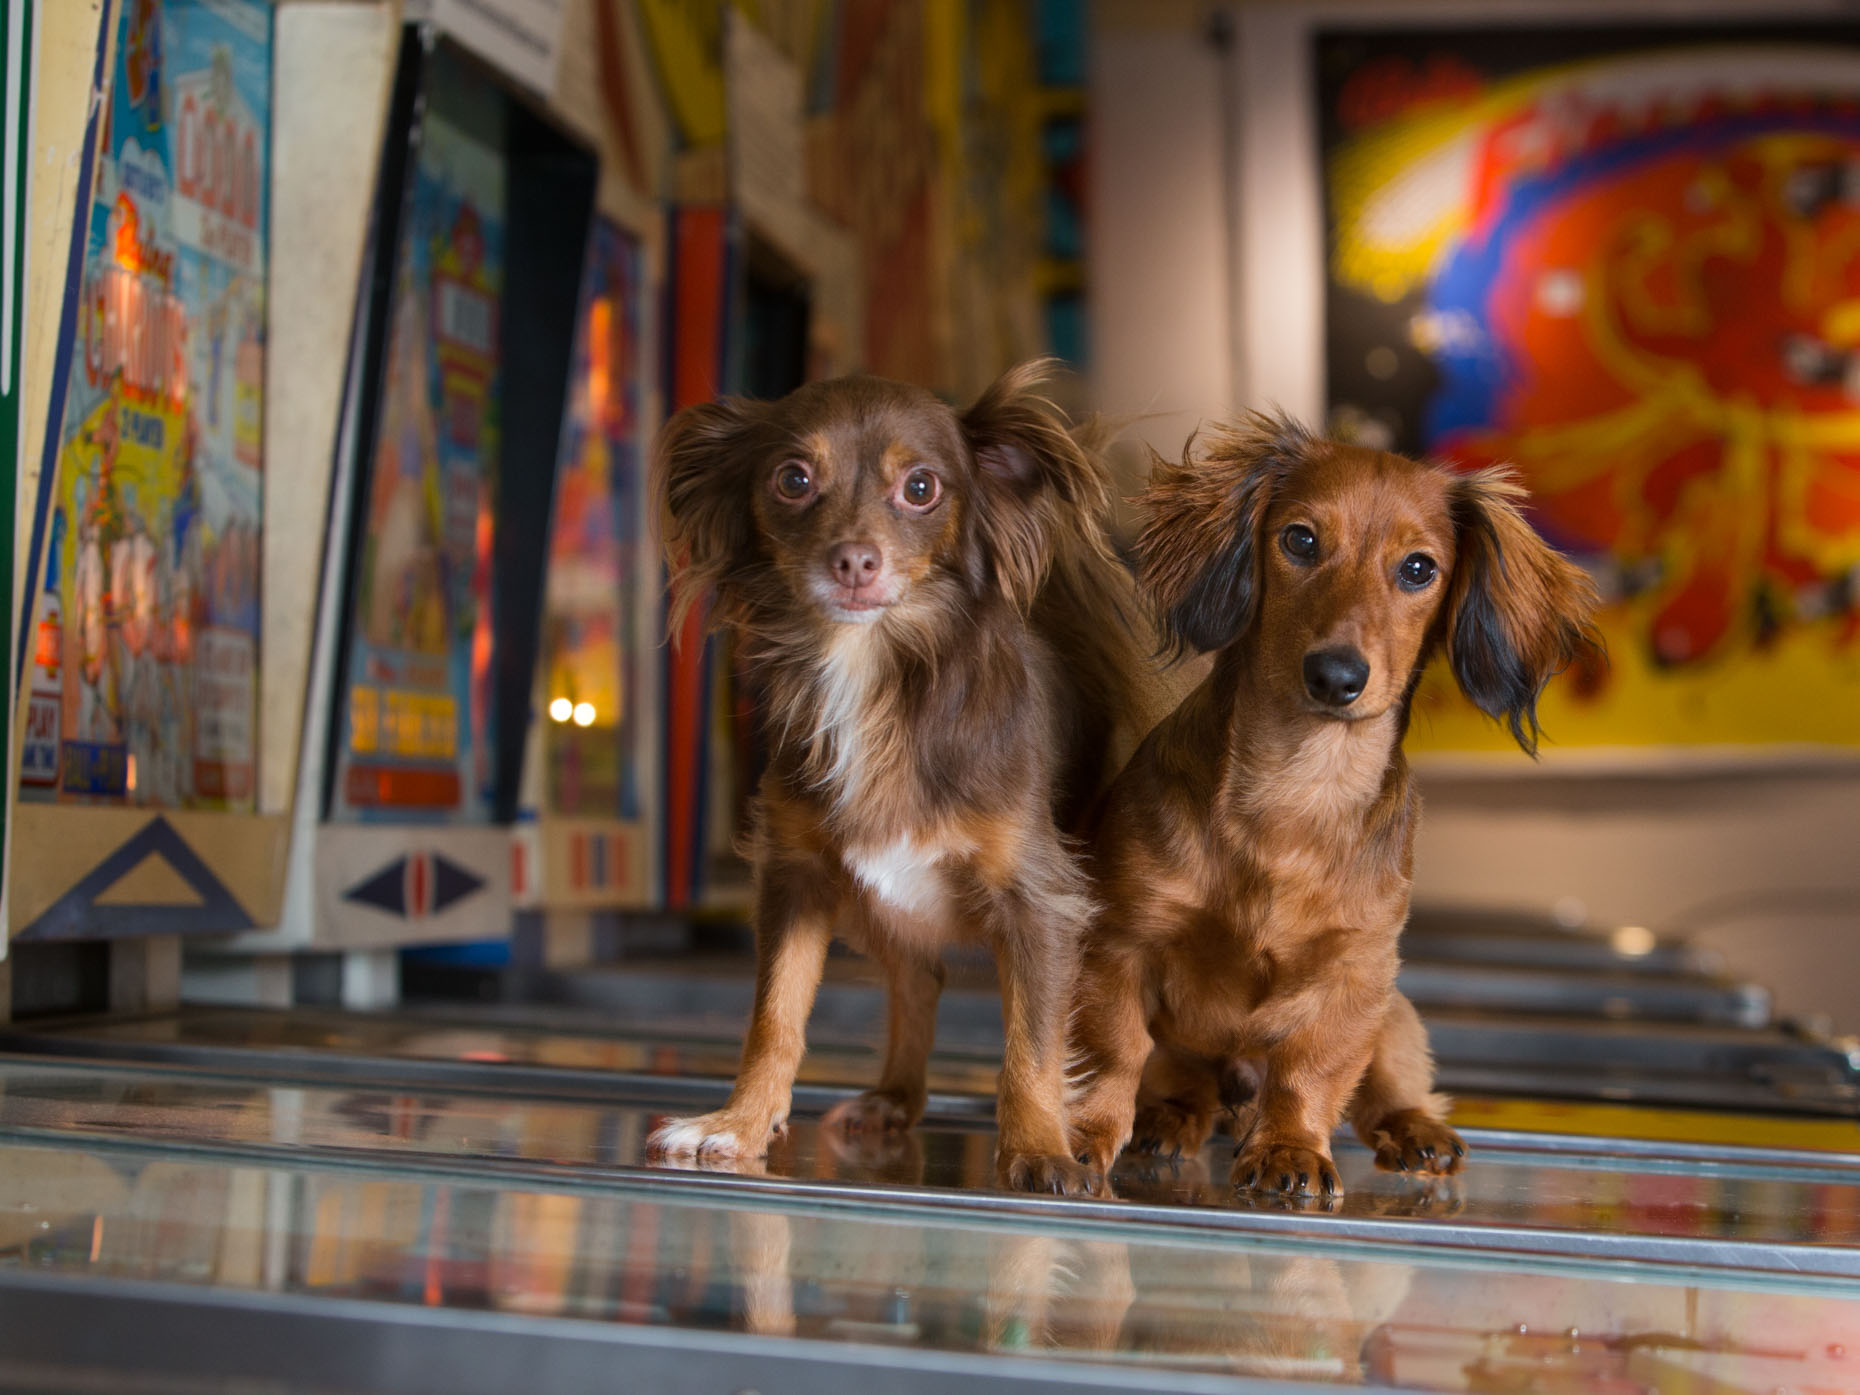 Dog and Pet Photography | Two Dogs on Pinball Machine by Mark Rogers